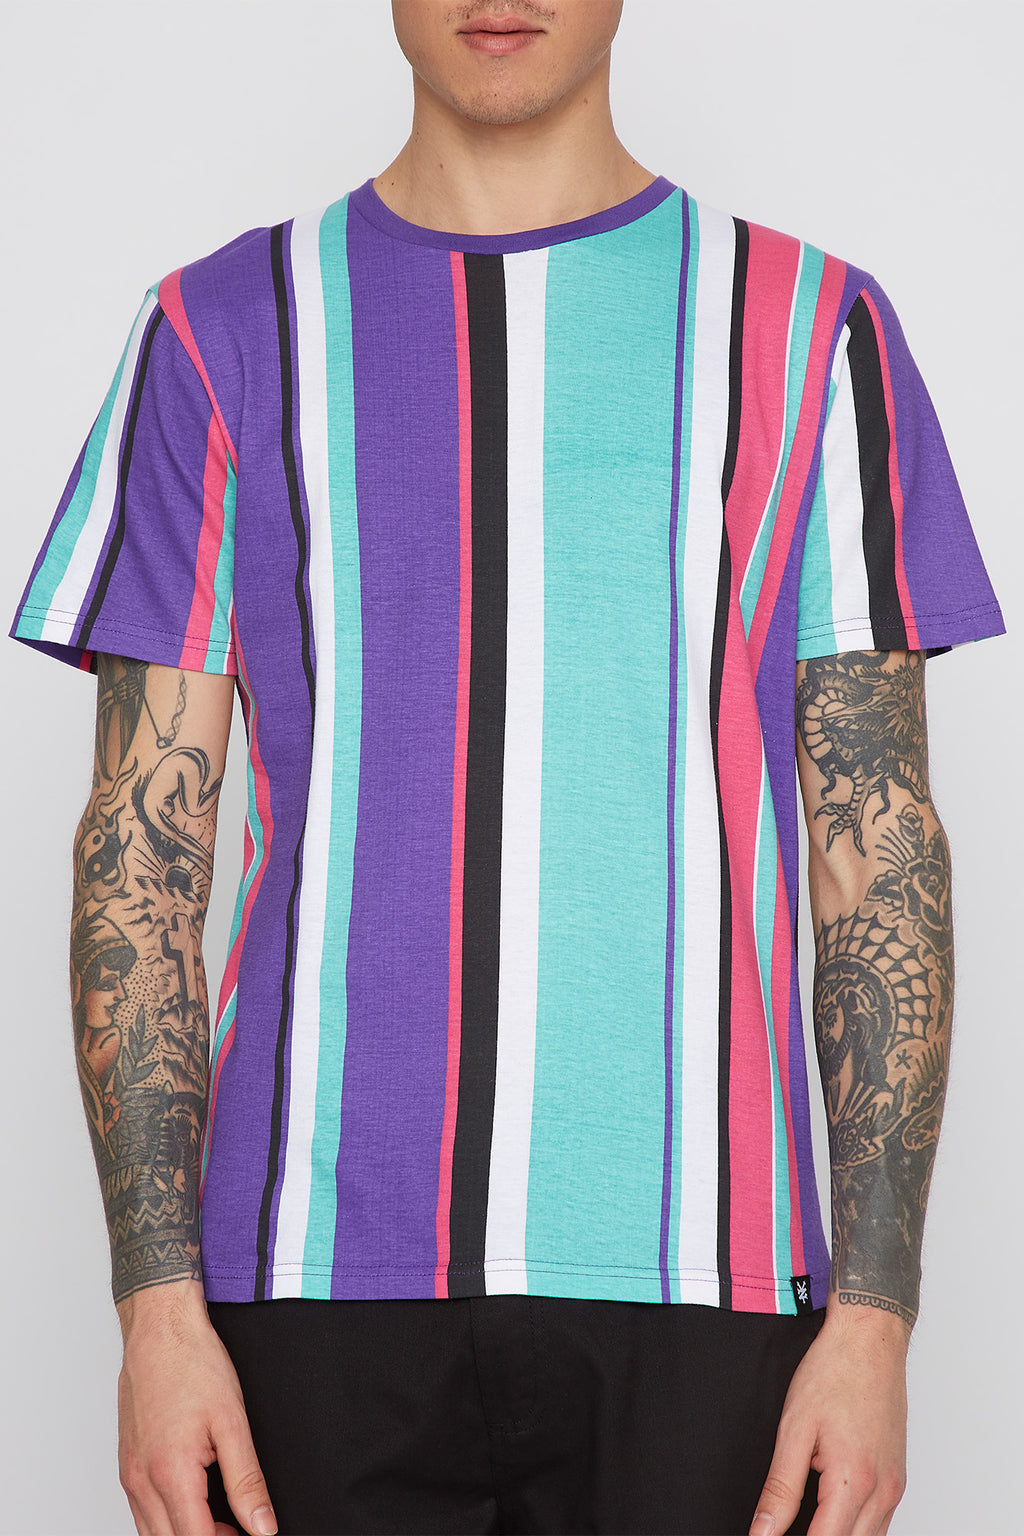 Zoo York Mens Striped T-Shirt